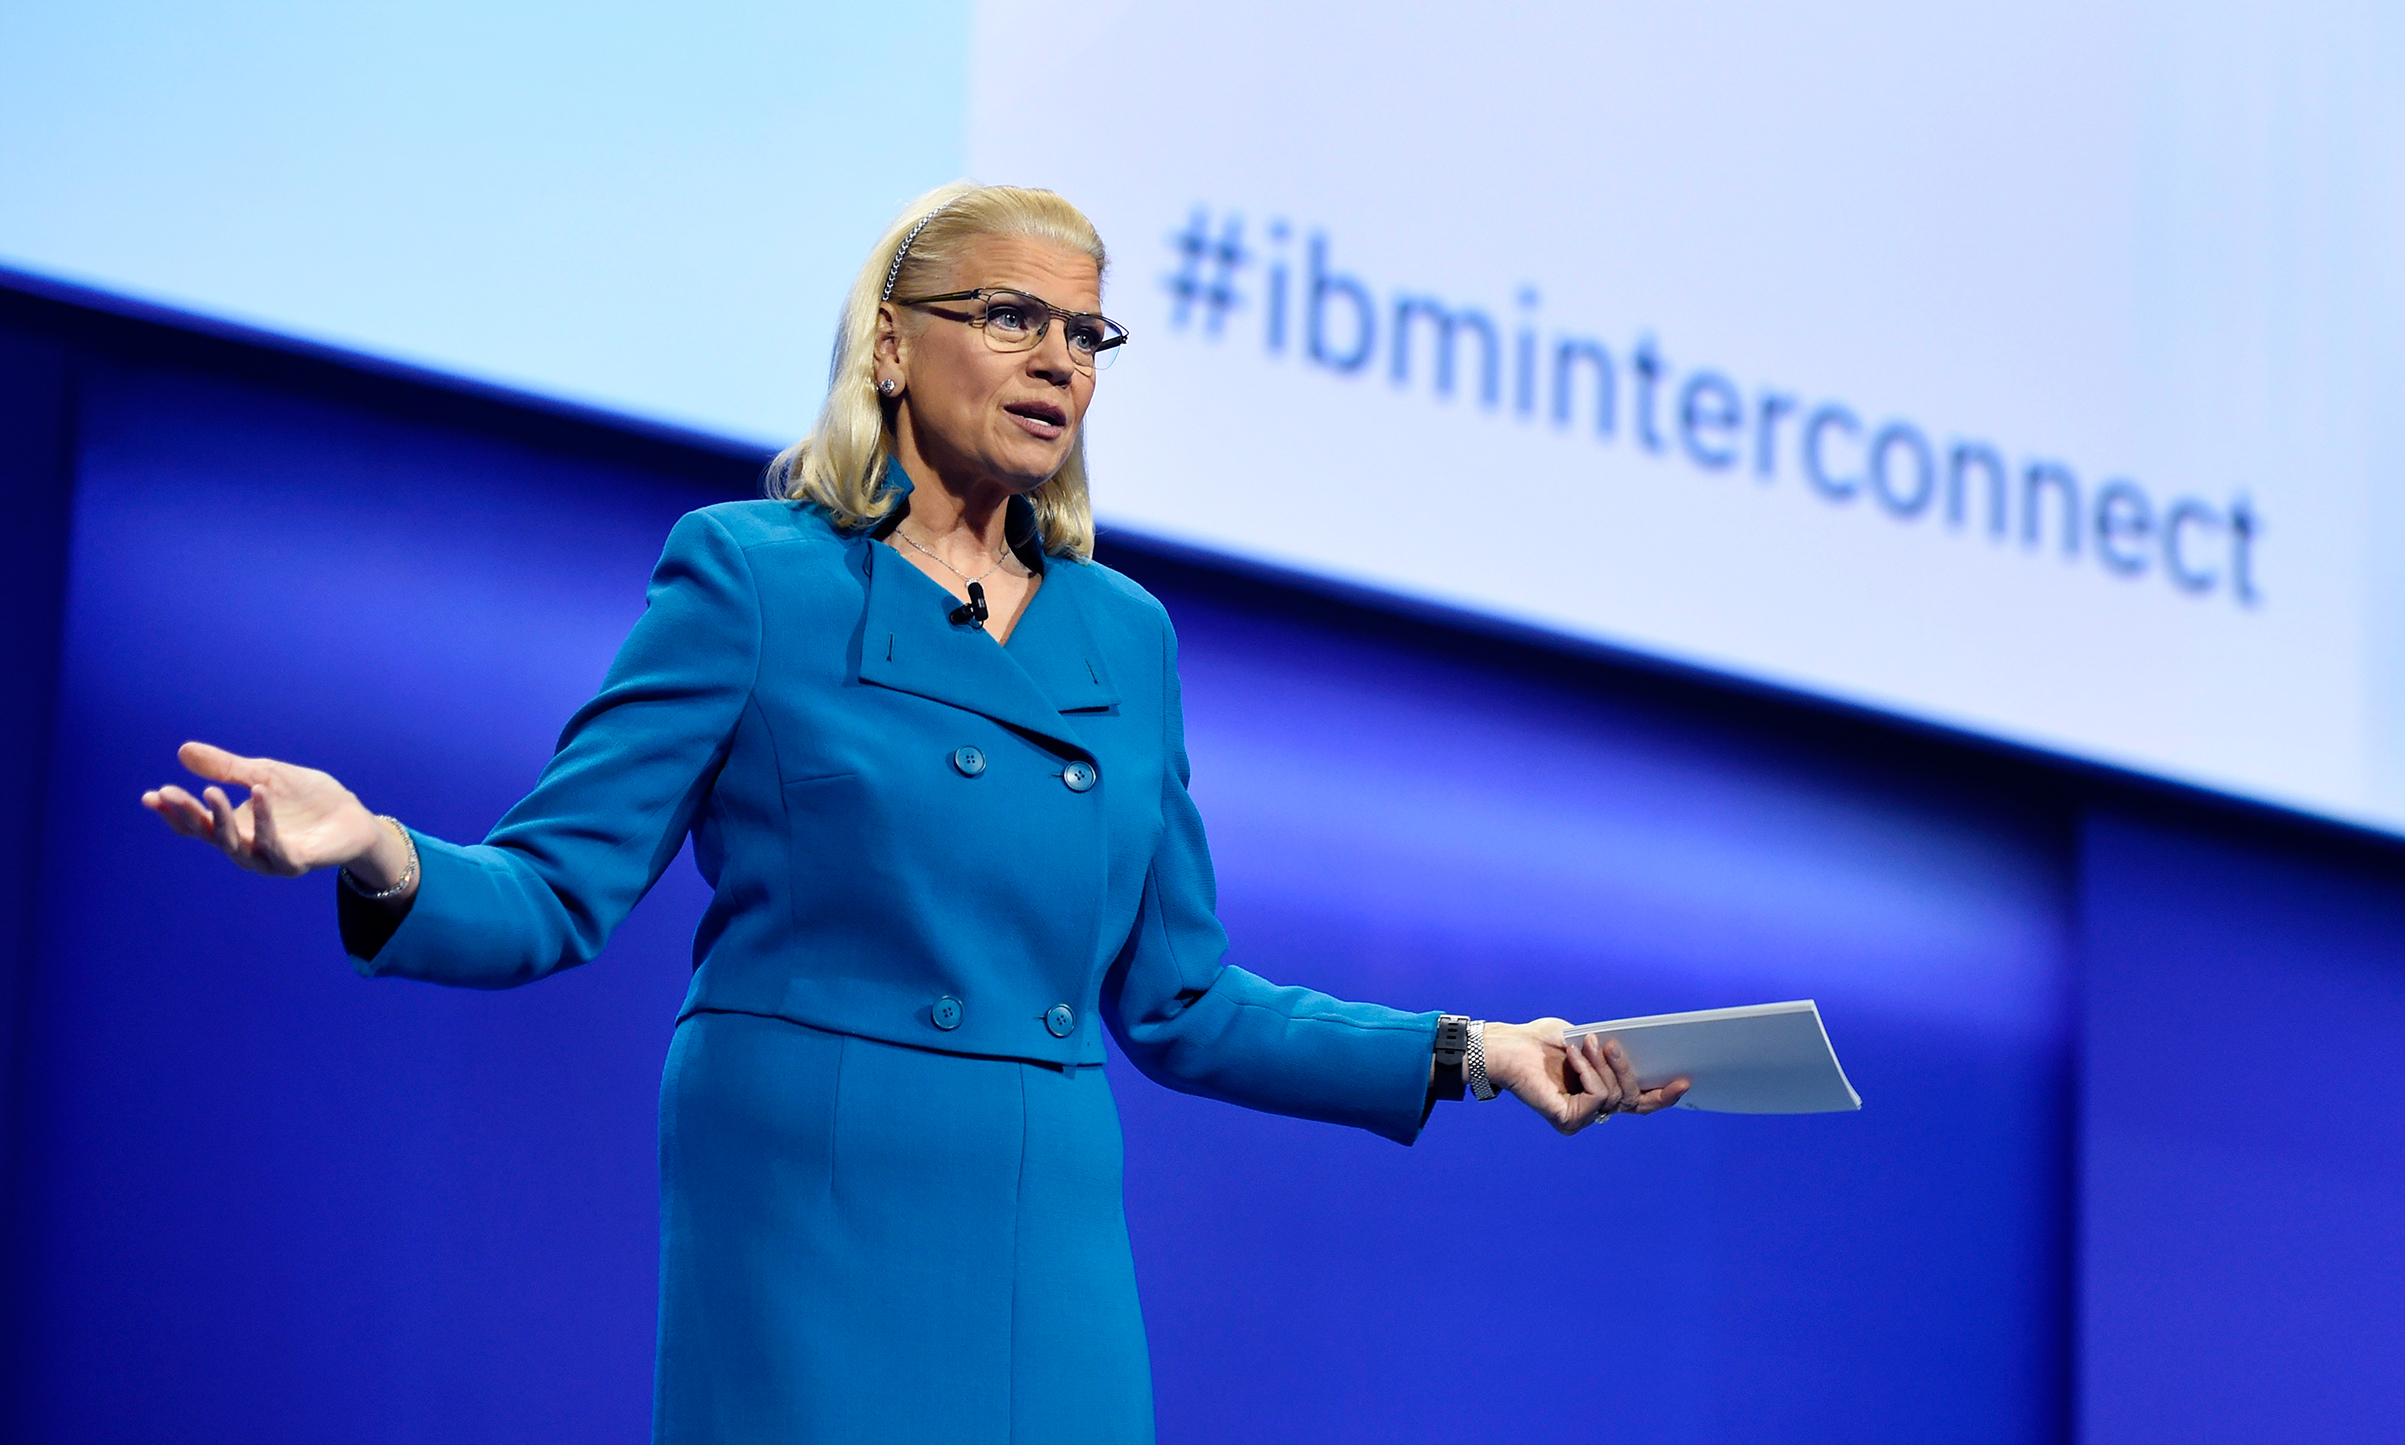 Ginni Rometty, chief executive officer of IBM, speaks during the IBM InterConnect 2017 conference in Las Vegas on March 21, 2017.